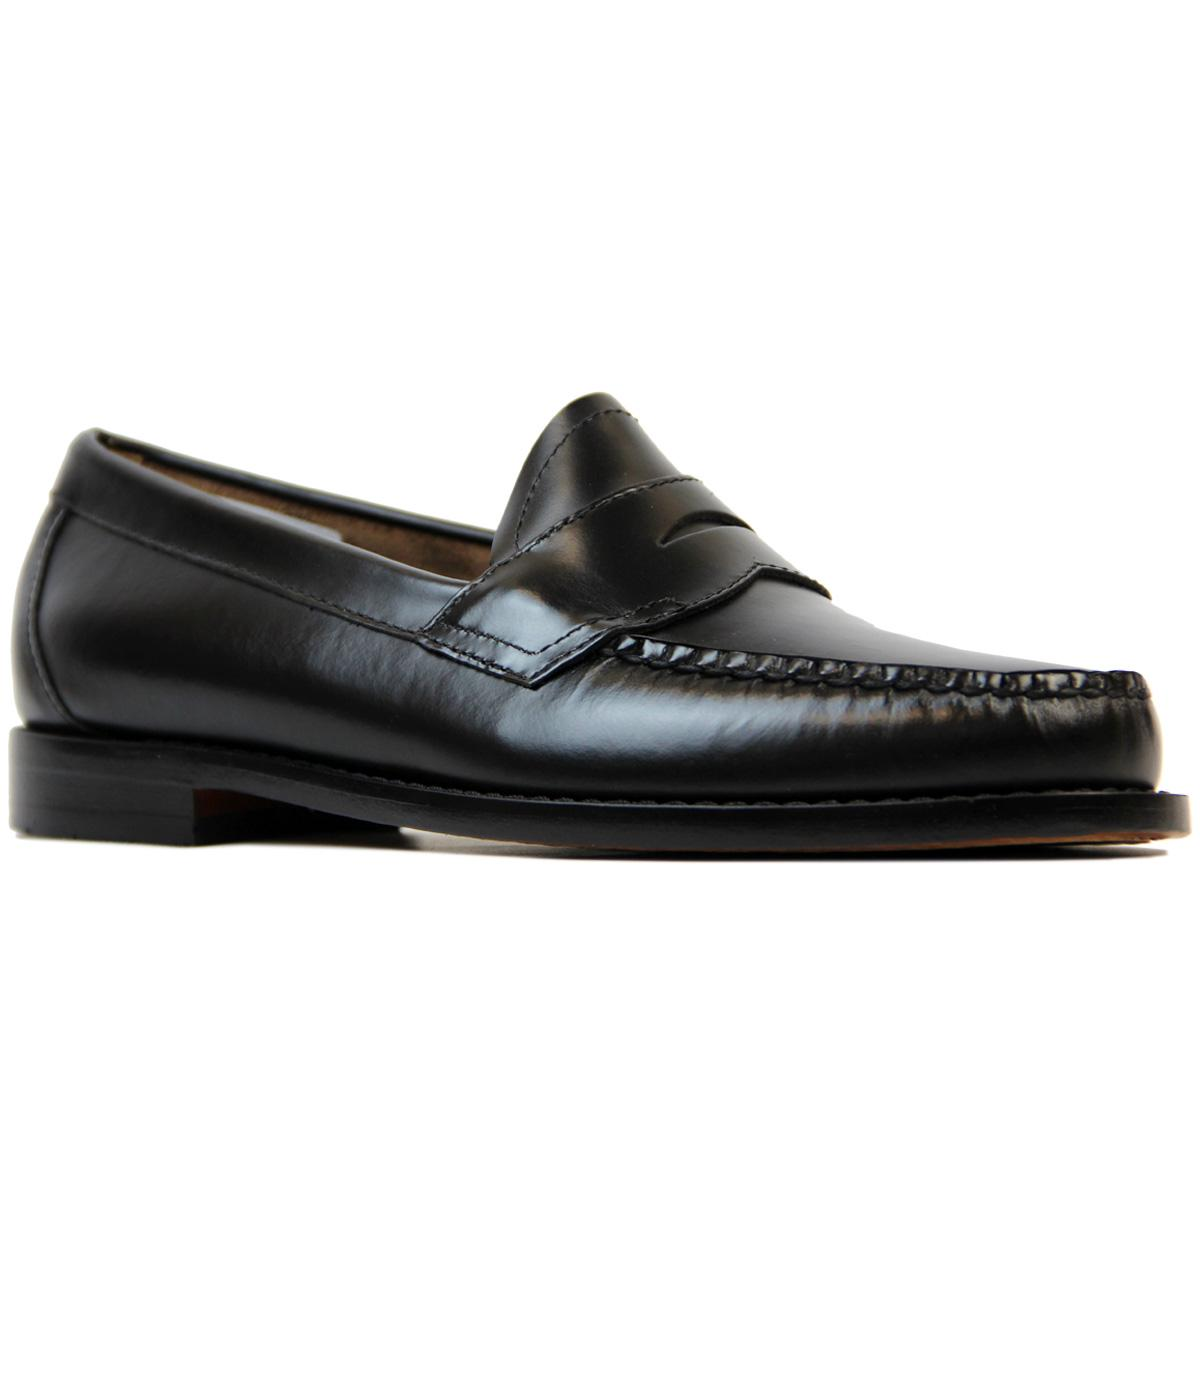 Logan BASS WEEJUNS Retro Mod Classic Penny Loafers